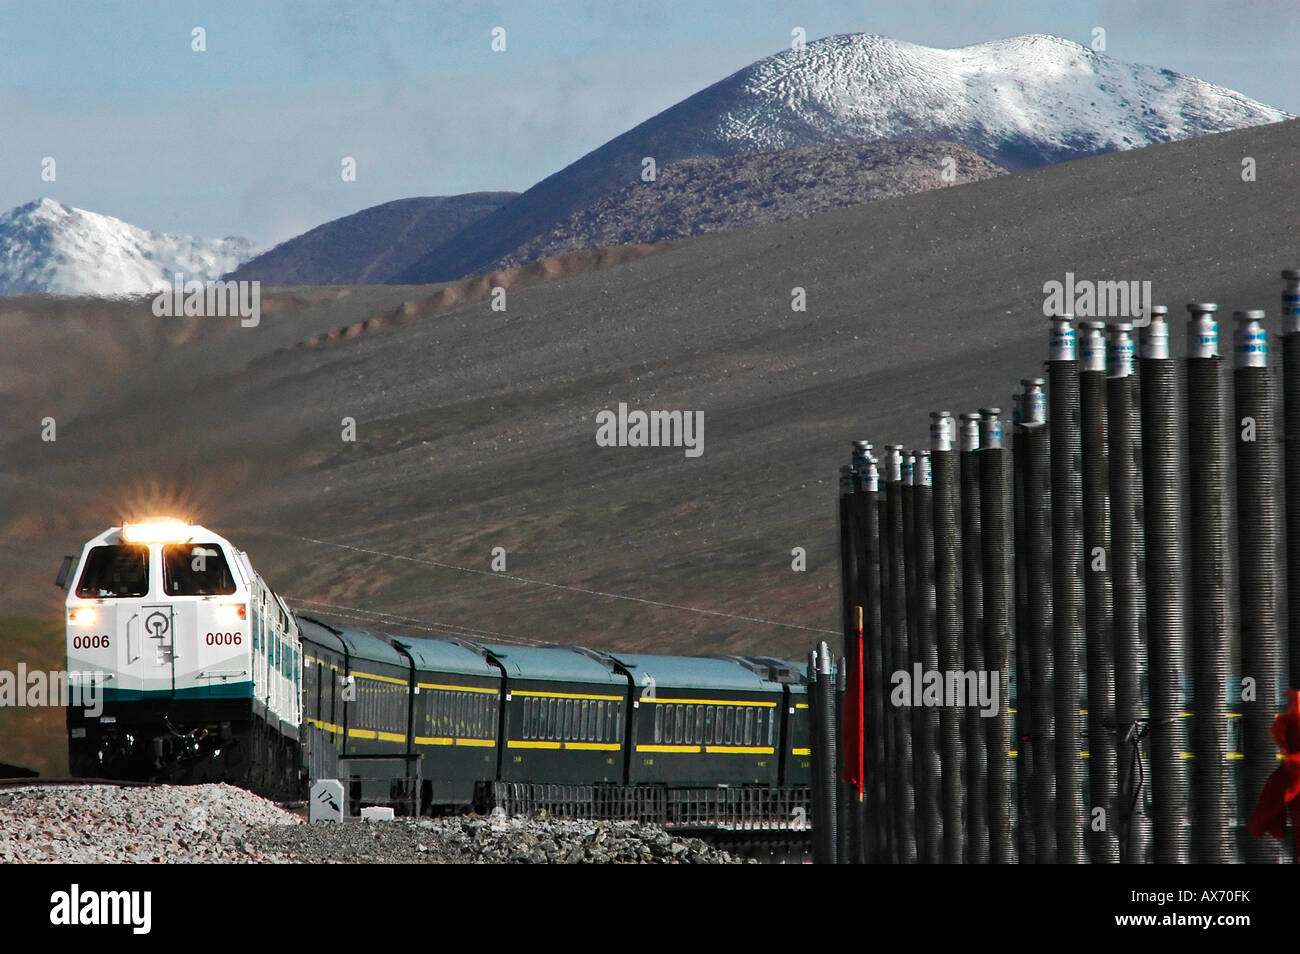 A Lhasa bound train tops the 4,767m Kunlun Pass, one of the highest points on the Tibet railway. Tibet train - Stock Image